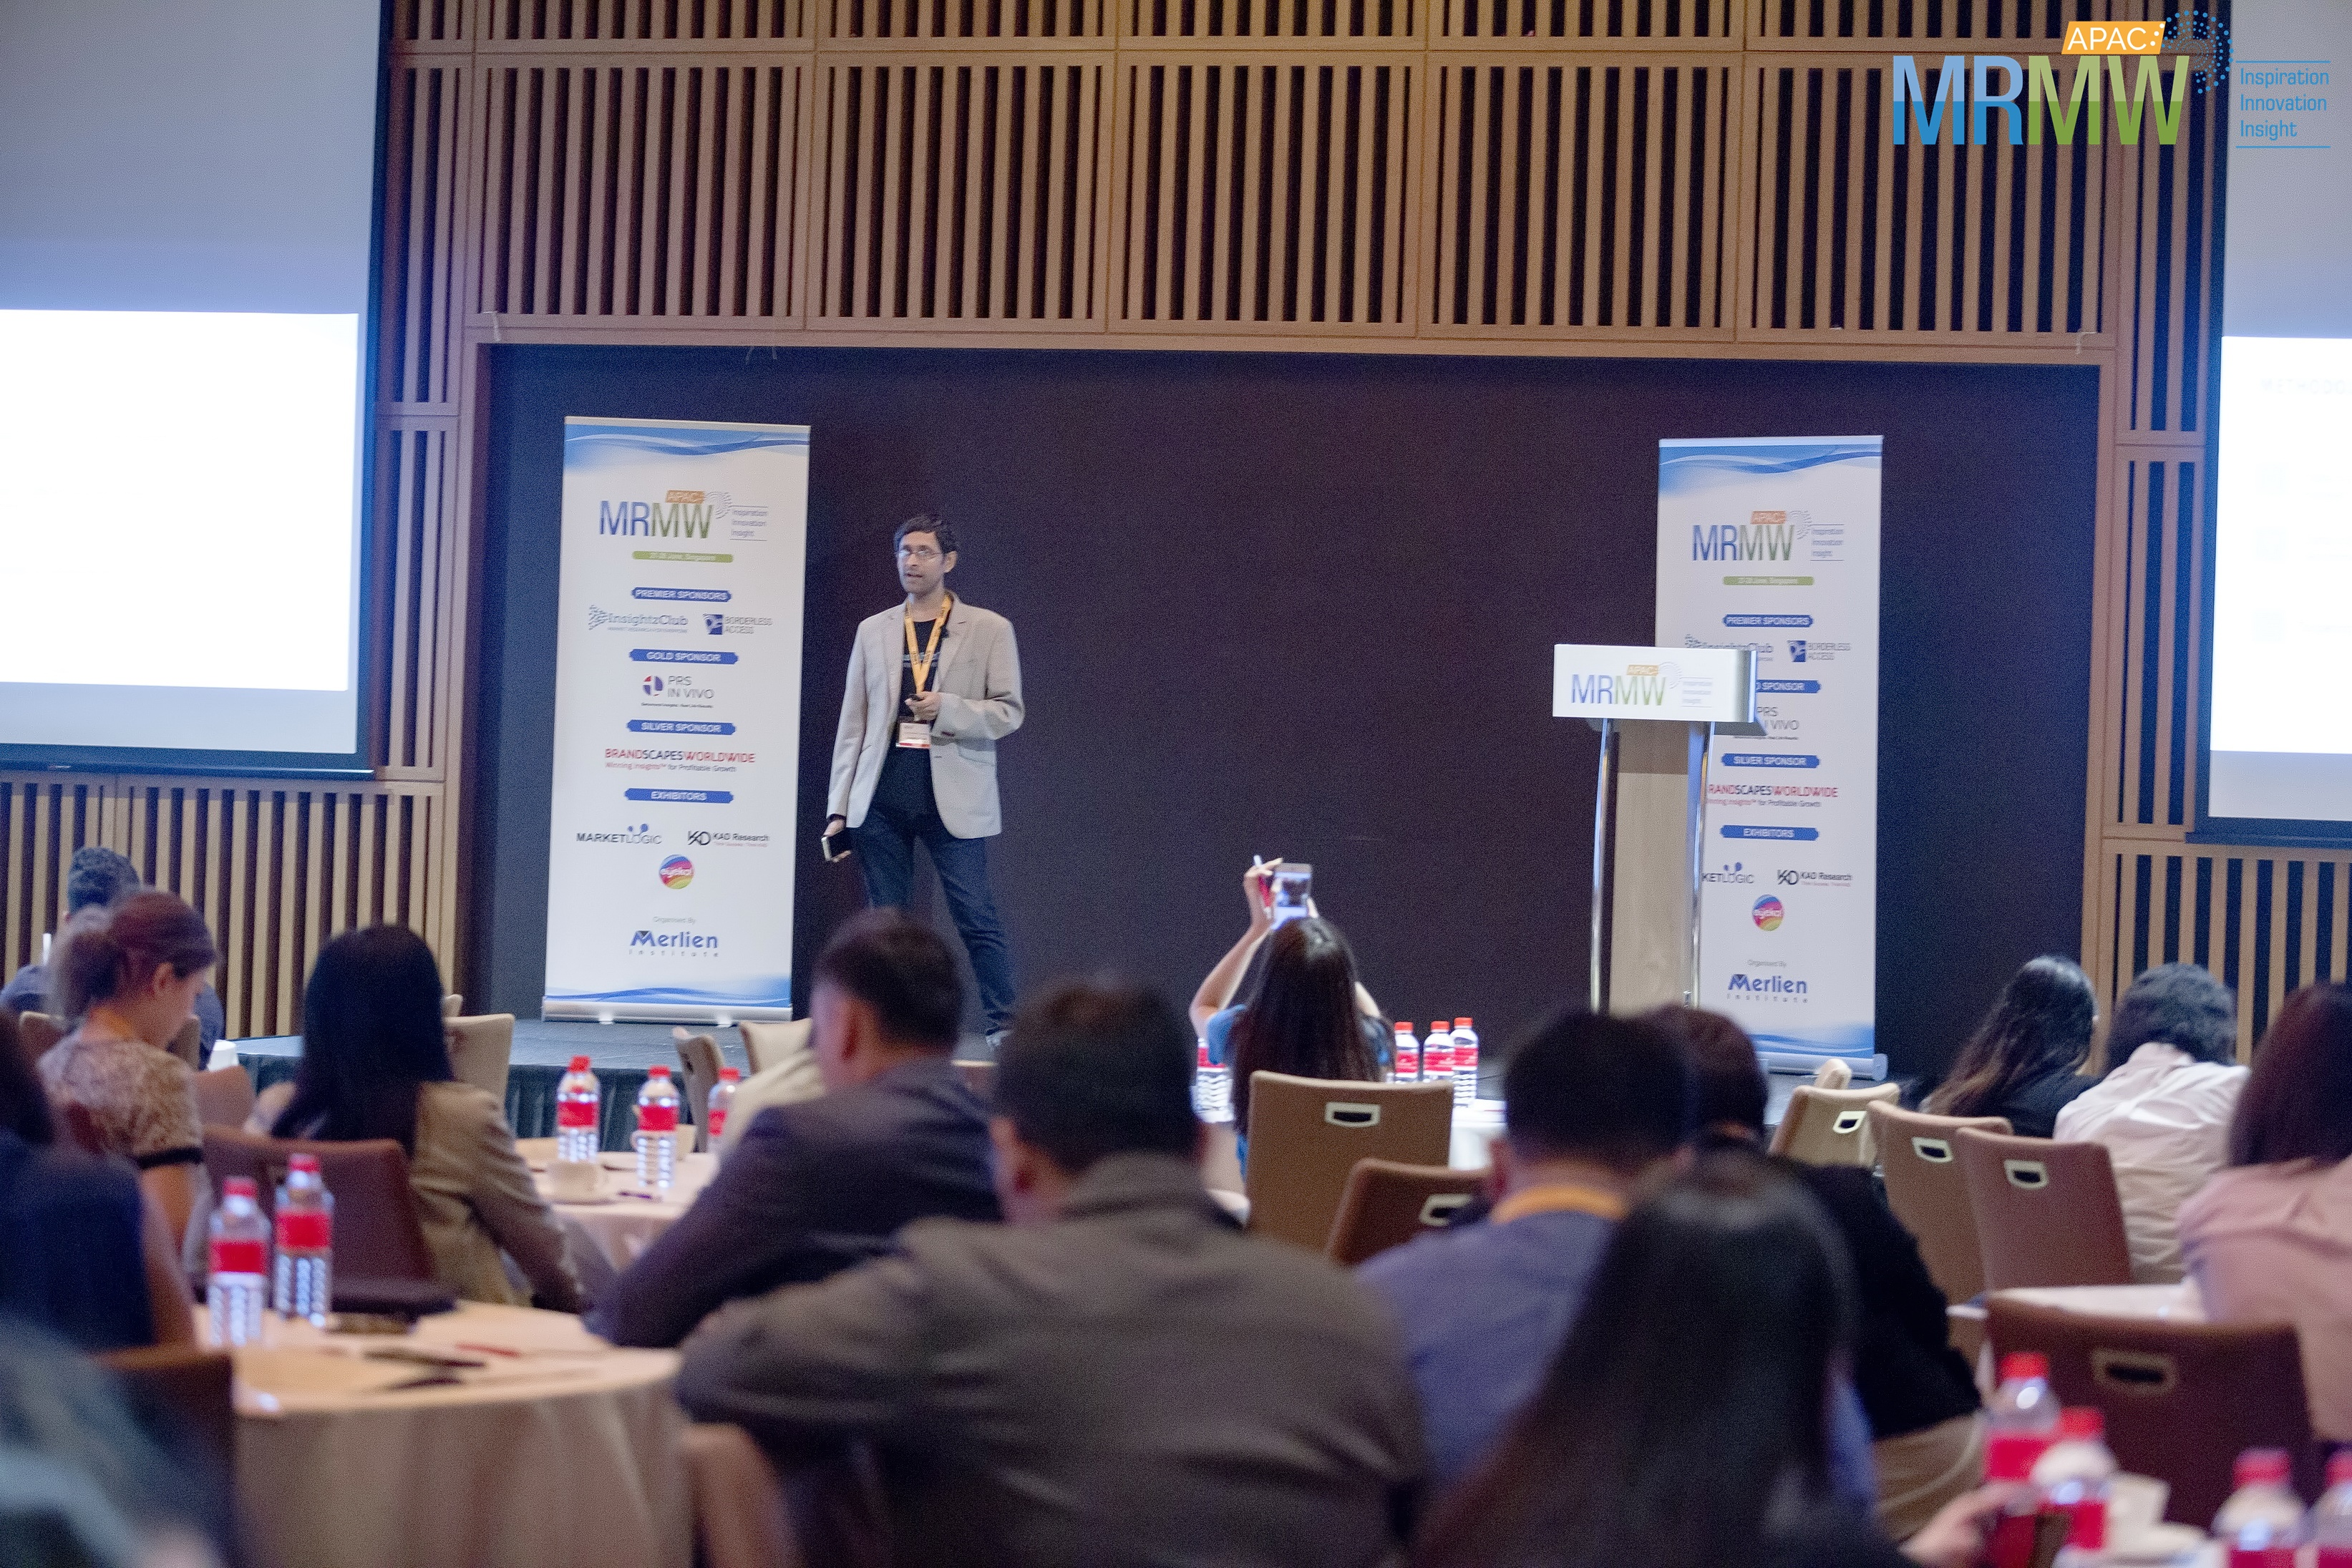 Padmanabhan Ramaswamy (Paddy) from InsightzClub at MRMW APAC 2018